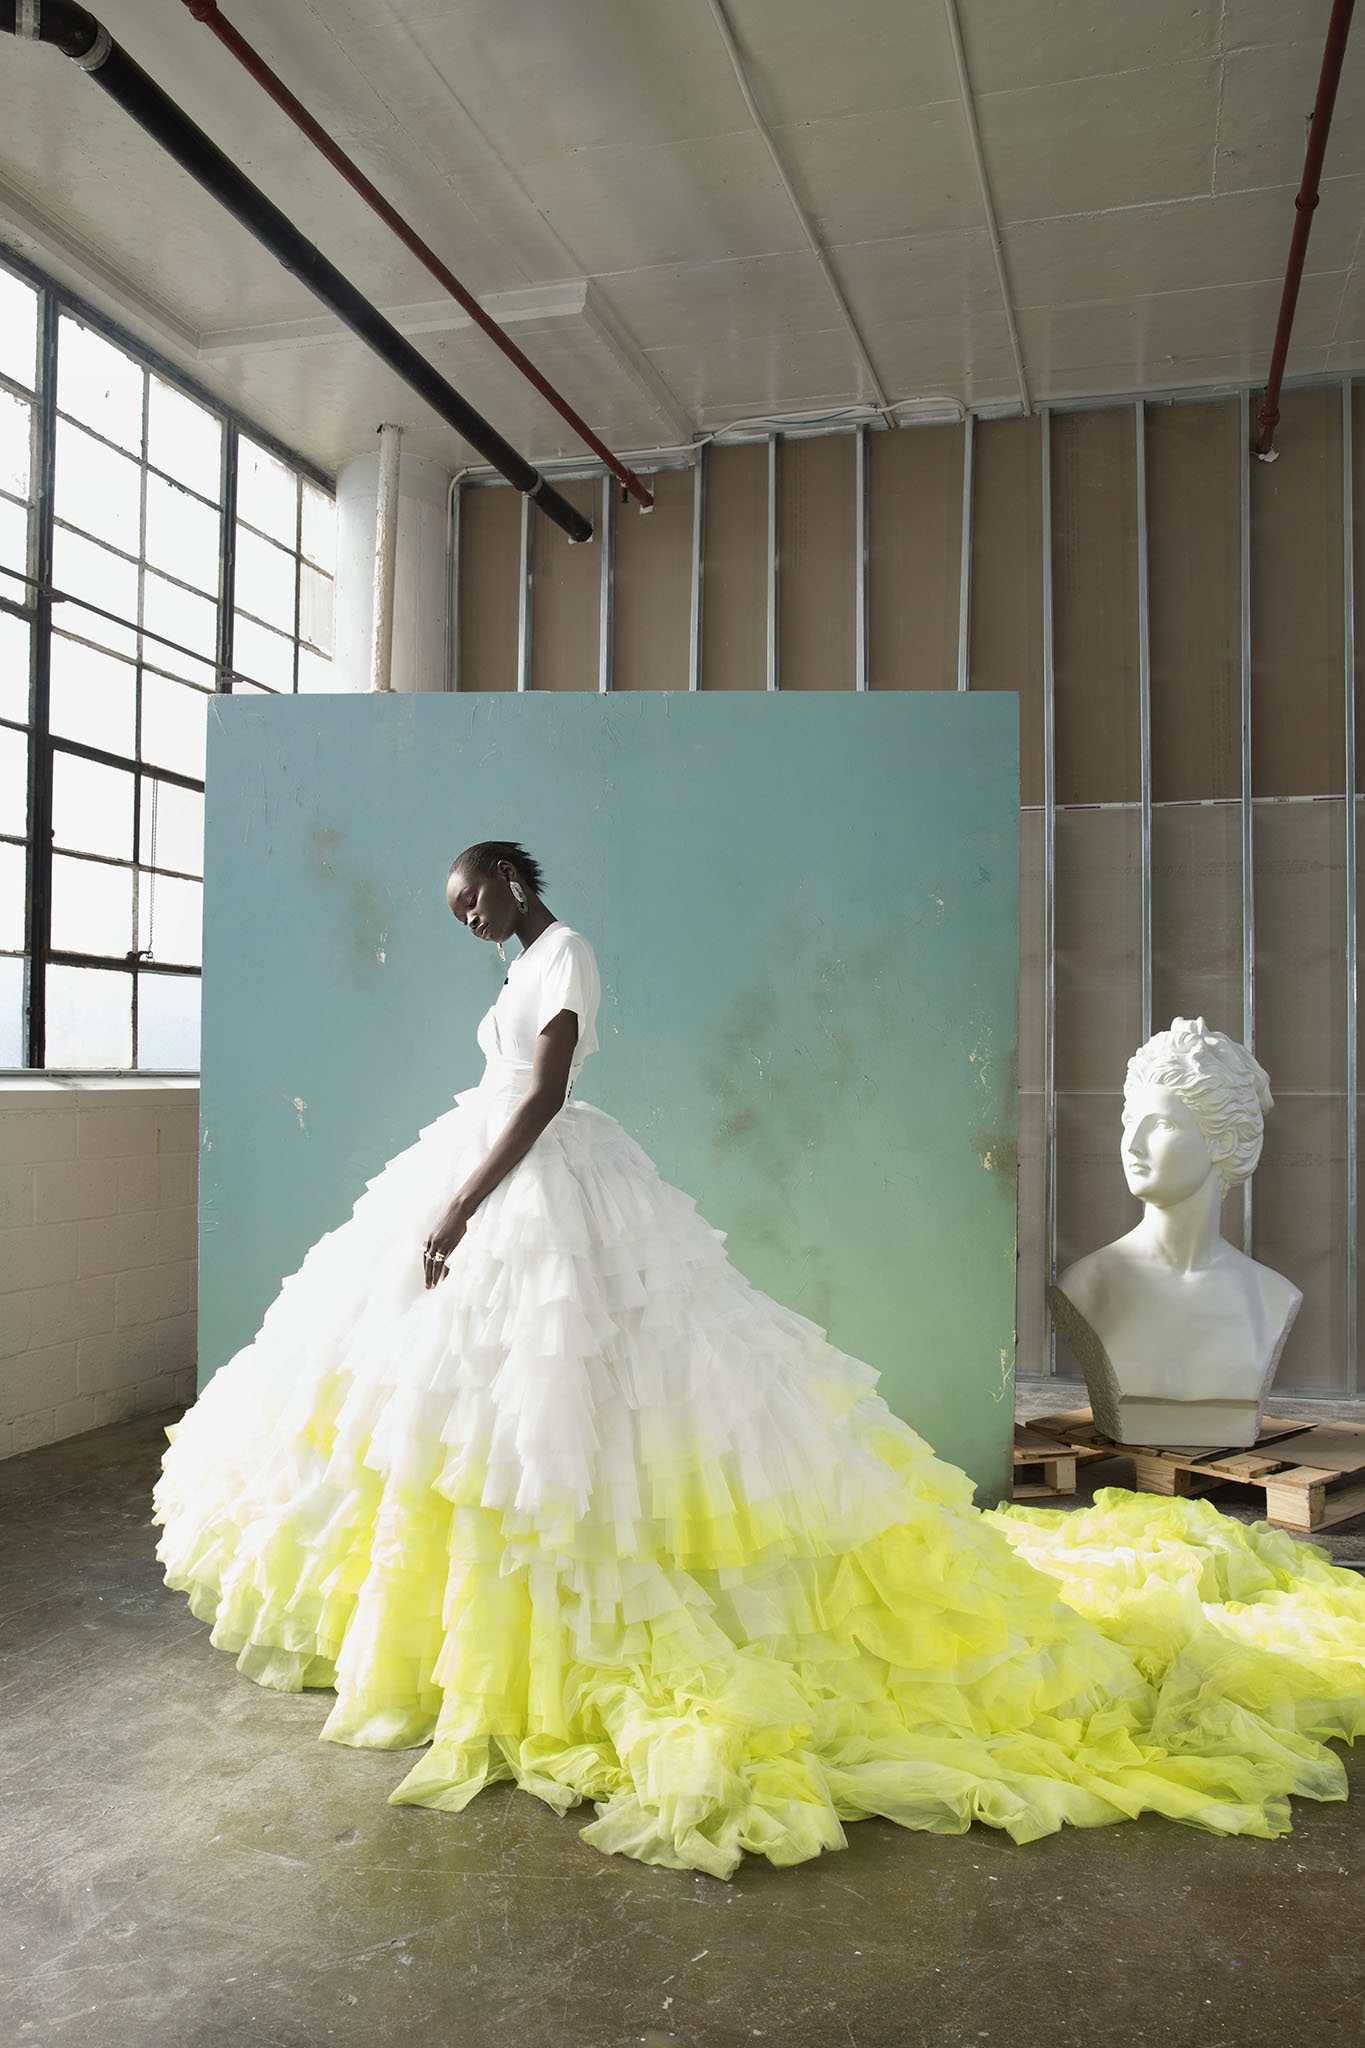 Spring 2019 Collections: The New Femininity, Styled by Alex Badia